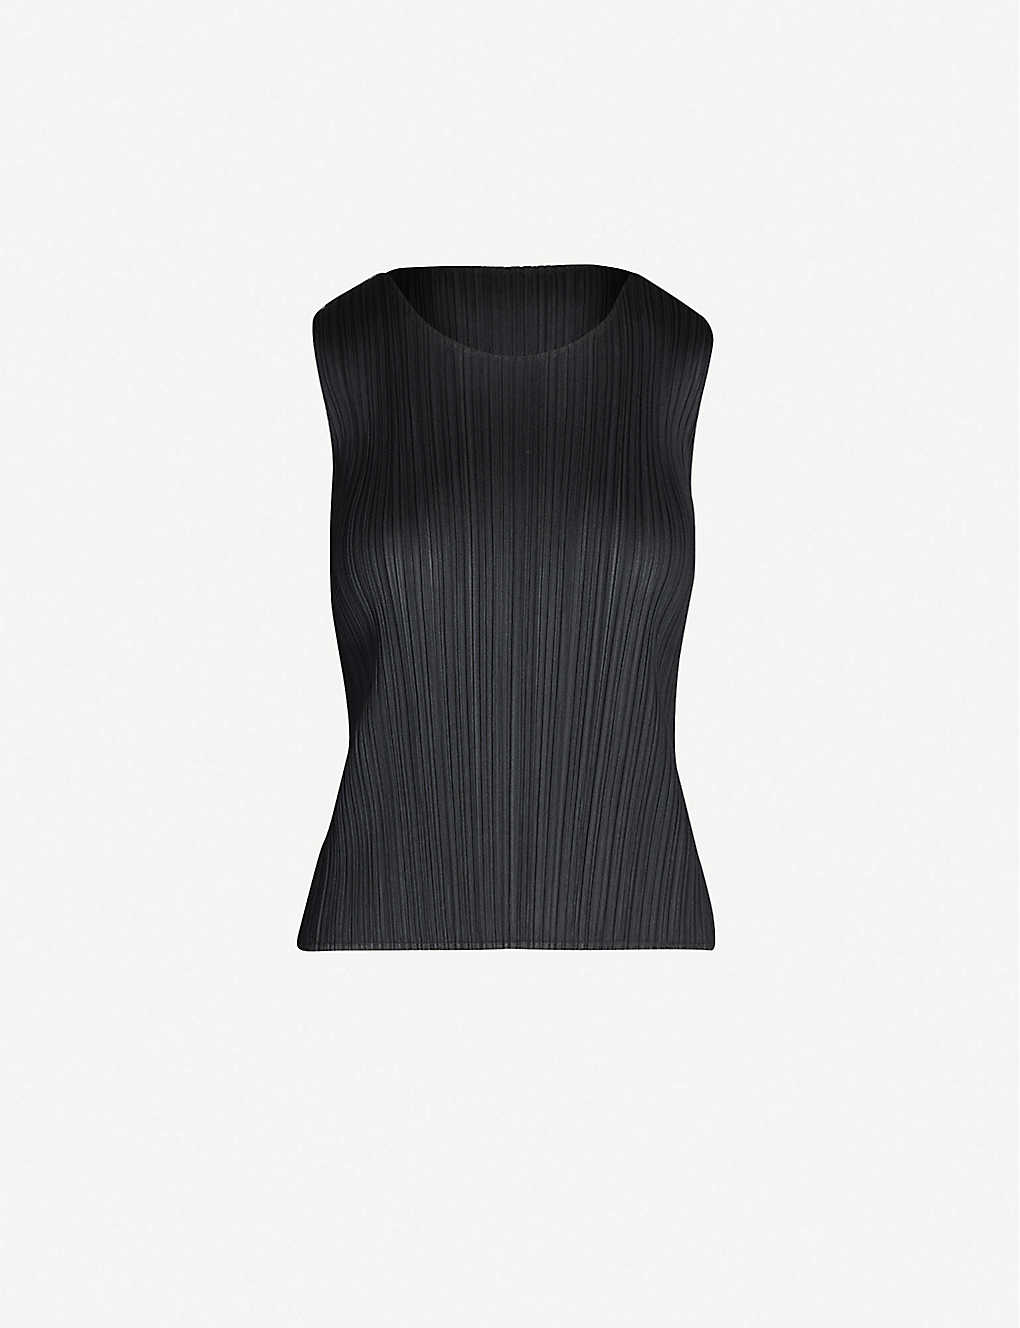 PLEATS PLEASE ISSEY MIYAKE: Basics sleeveless satin pleated top